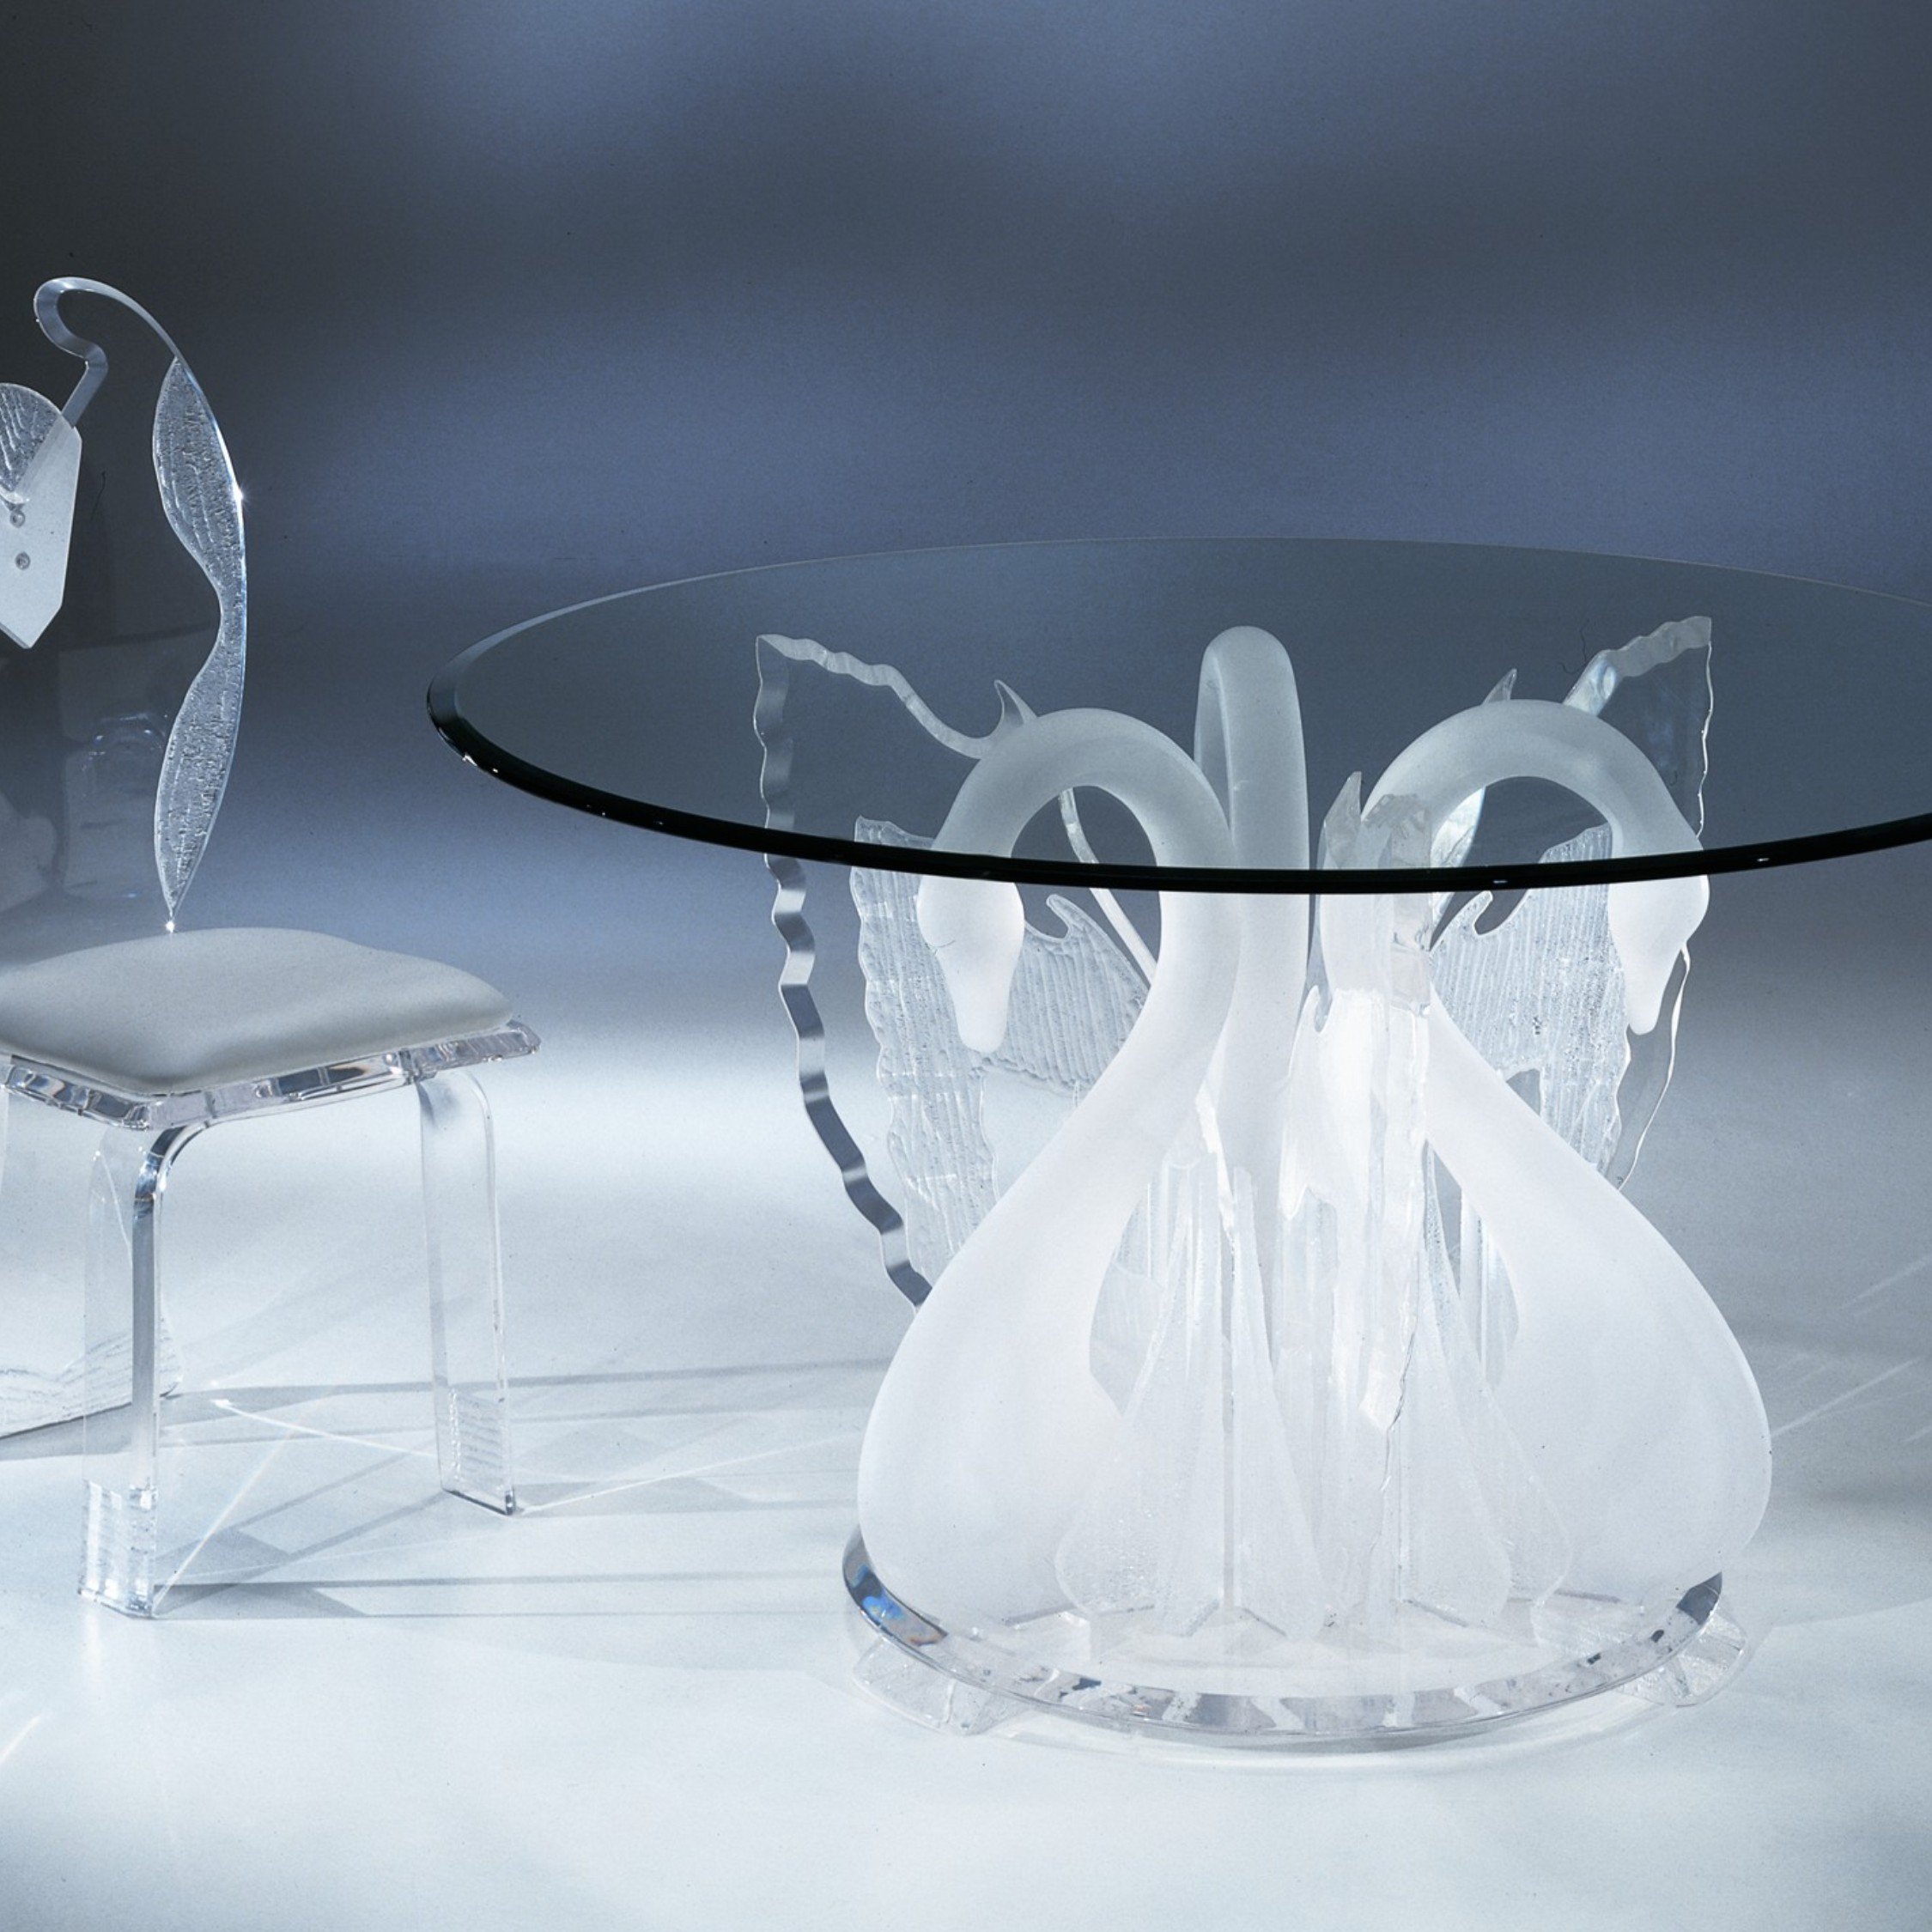 Clear Acrylic Legend Swan Round Dinette Table With Glass  : Clear Acrylic Legend Swan Round Dinette Table With Glass Top from www.usafurnitureonline.com size 2250 x 2250 jpeg 580kB